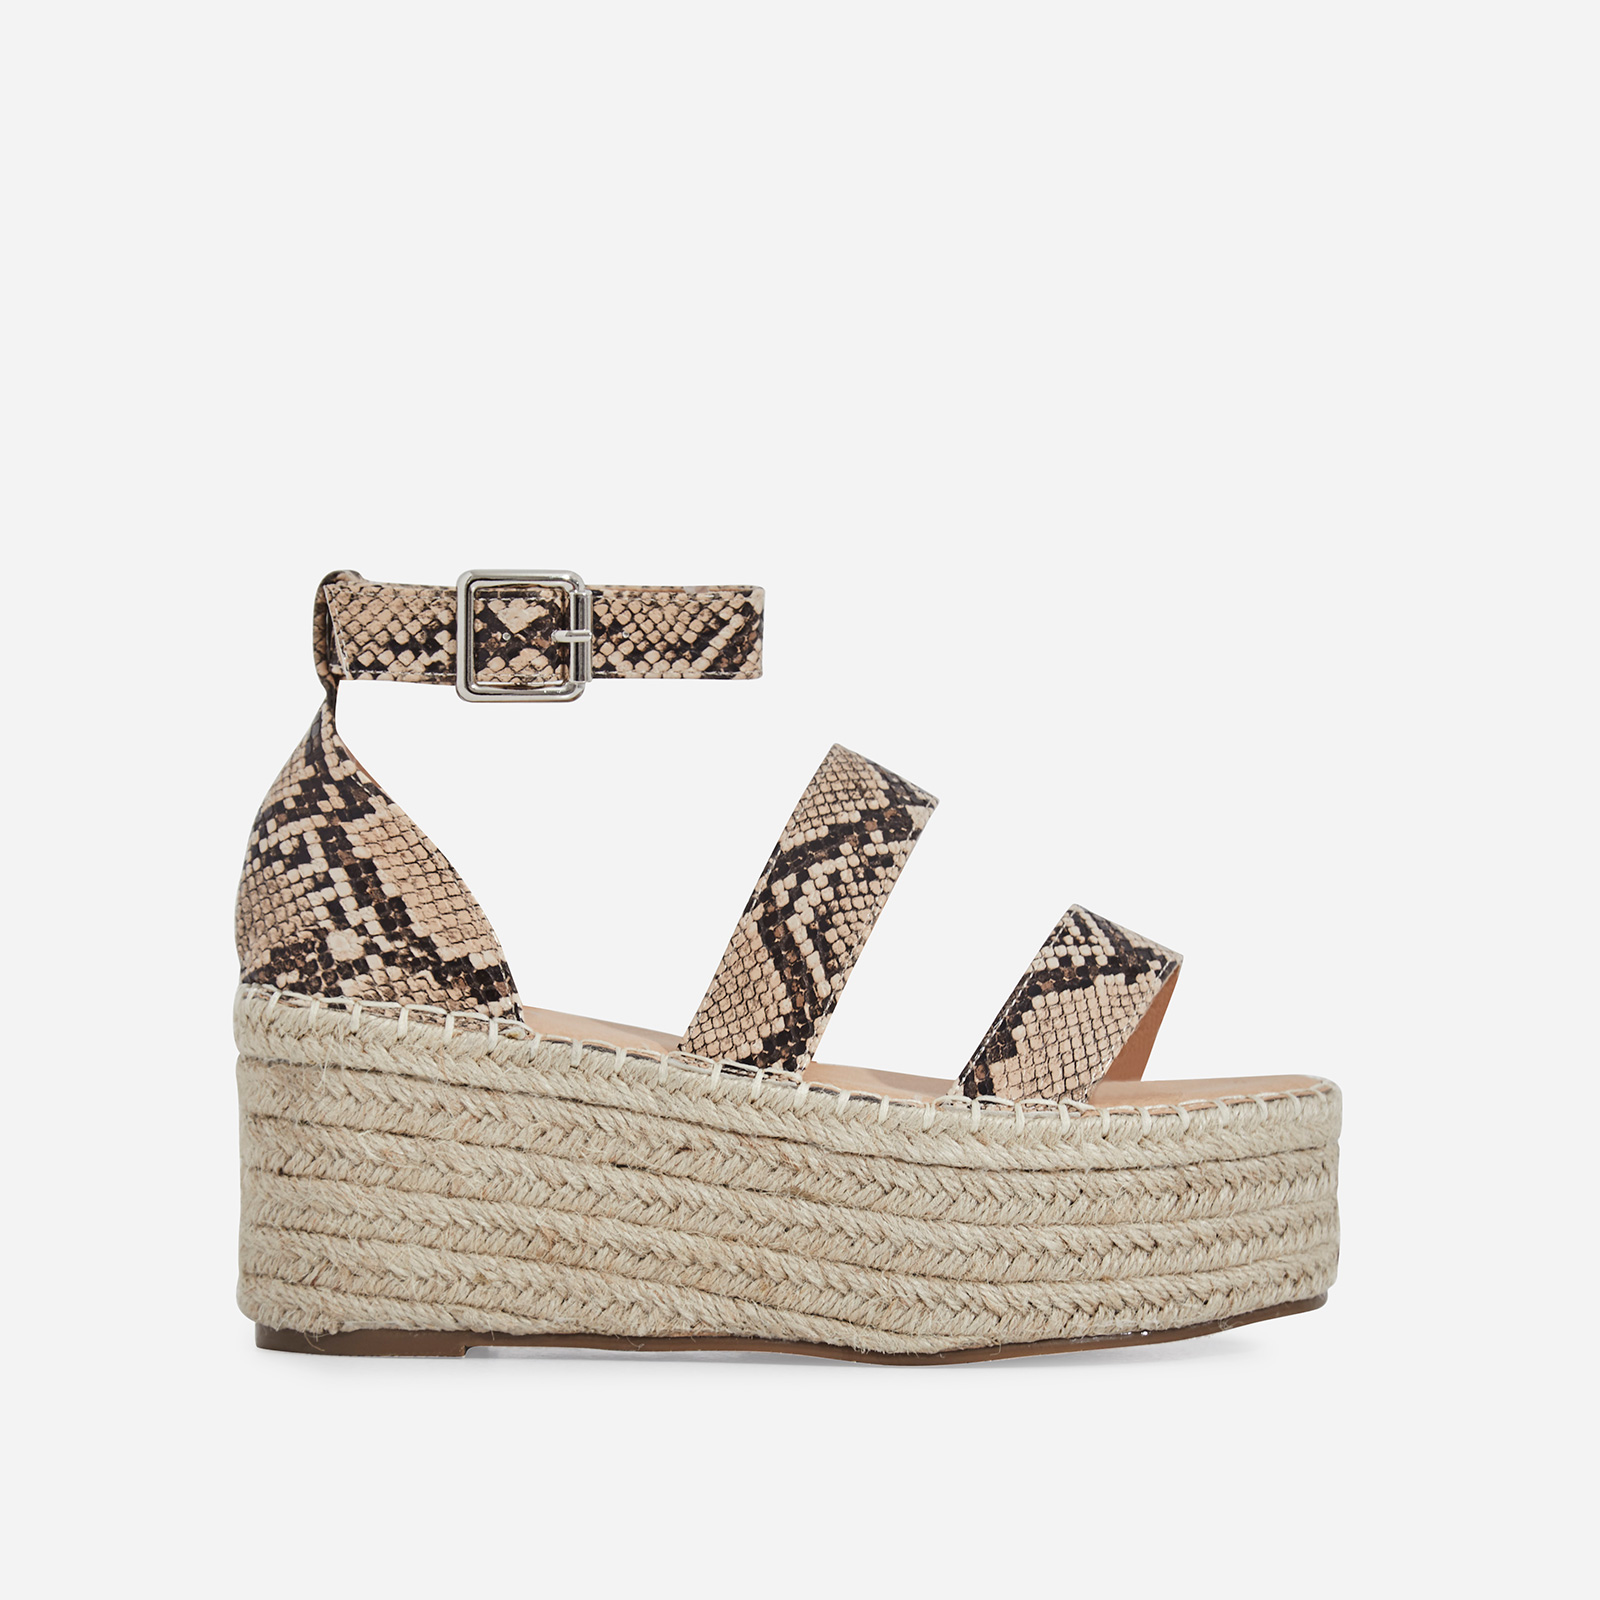 Hazy Espadrille Flatform In Nude Snake Print Faux Leather